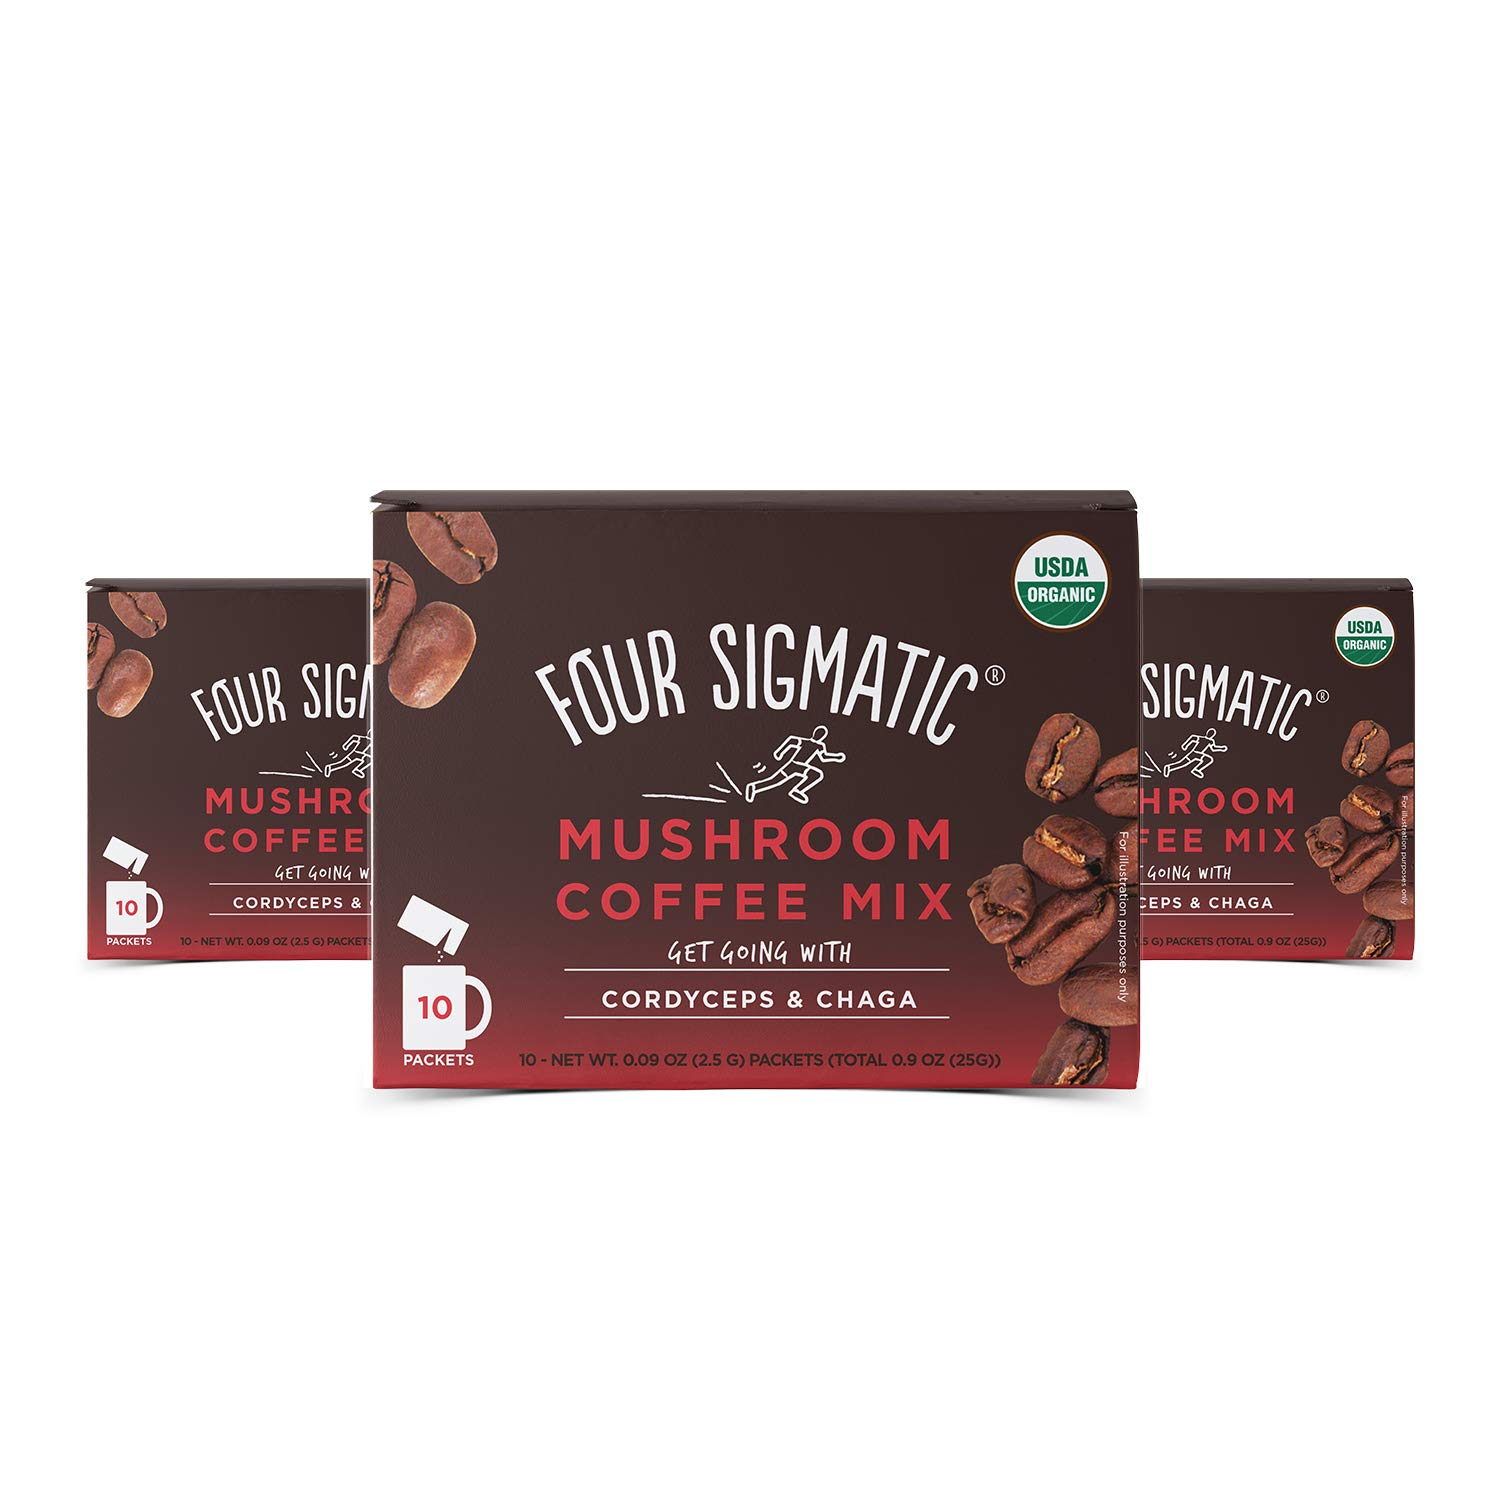 Four Sigmatic Mushroom Coffee Mix Cordyceps and Chaga Pack of 3 (30 Packets Total) by Four Sigmatic